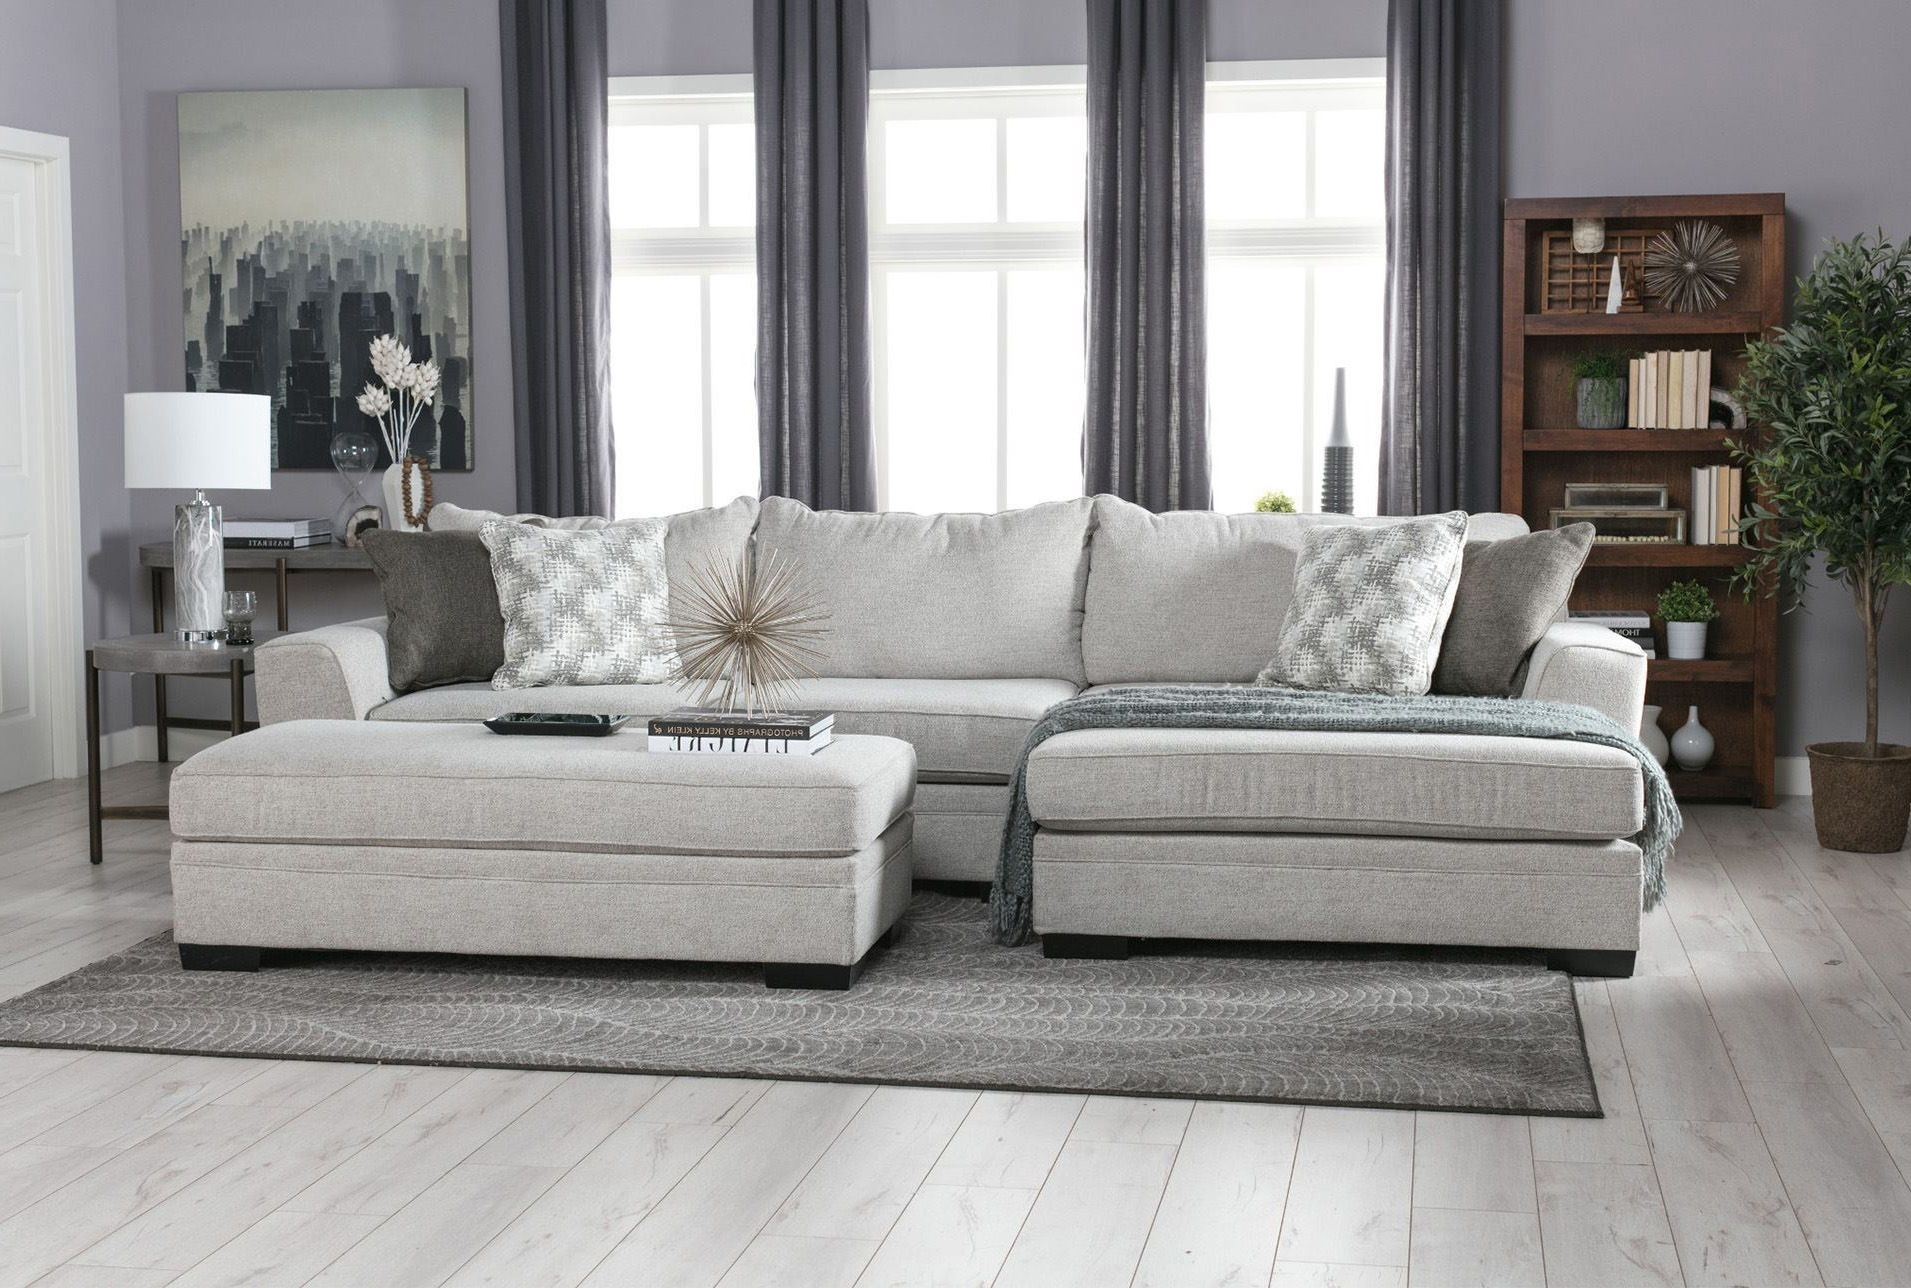 Delano 2 Piece Sectional W/raf Oversized Chaise | Living Room Ideas With Regard To Delano 2 Piece Sectionals With Laf Oversized Chaise (Image 13 of 25)